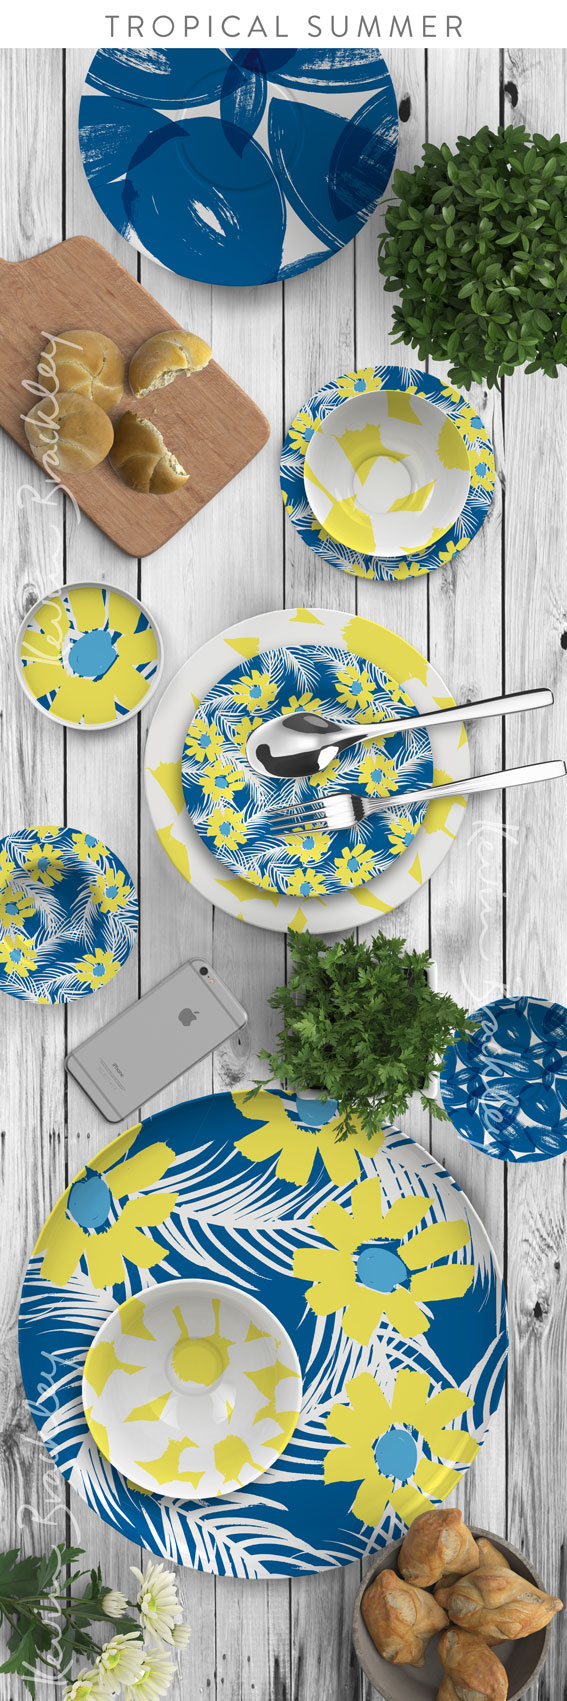 Home decor in my Tropical Summer collection